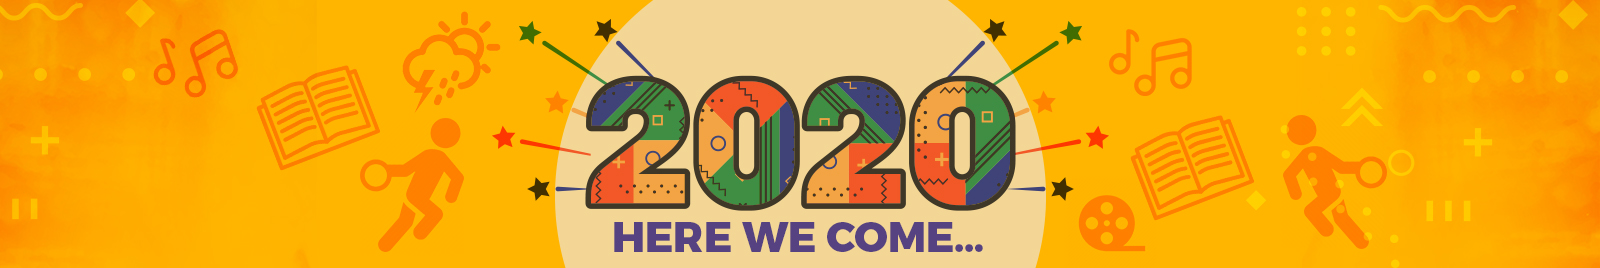 2020! HERE WE COME…